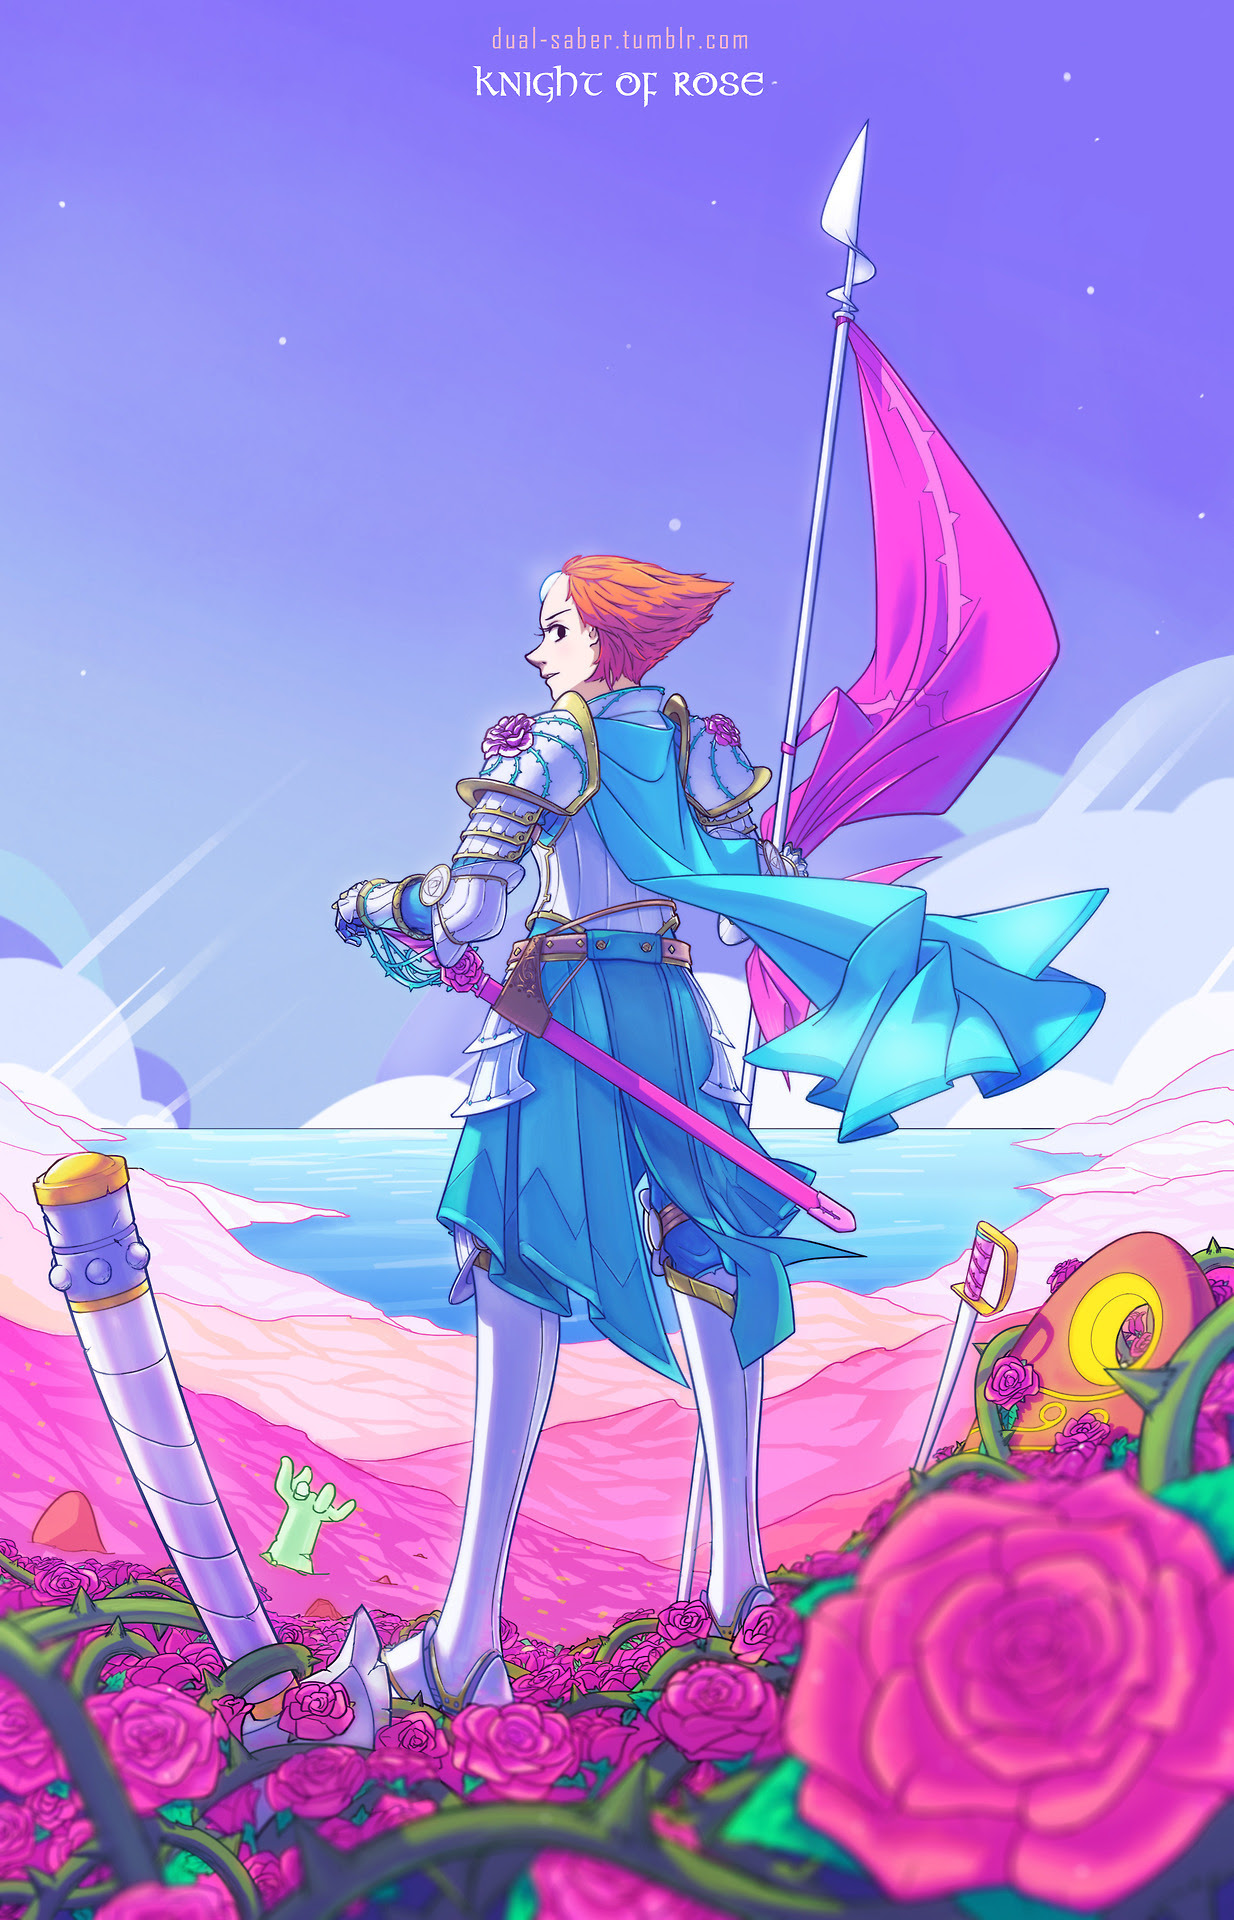 Pearl is brave and devoted Pearl is precise and elegant Pearl is the Knight of Rose